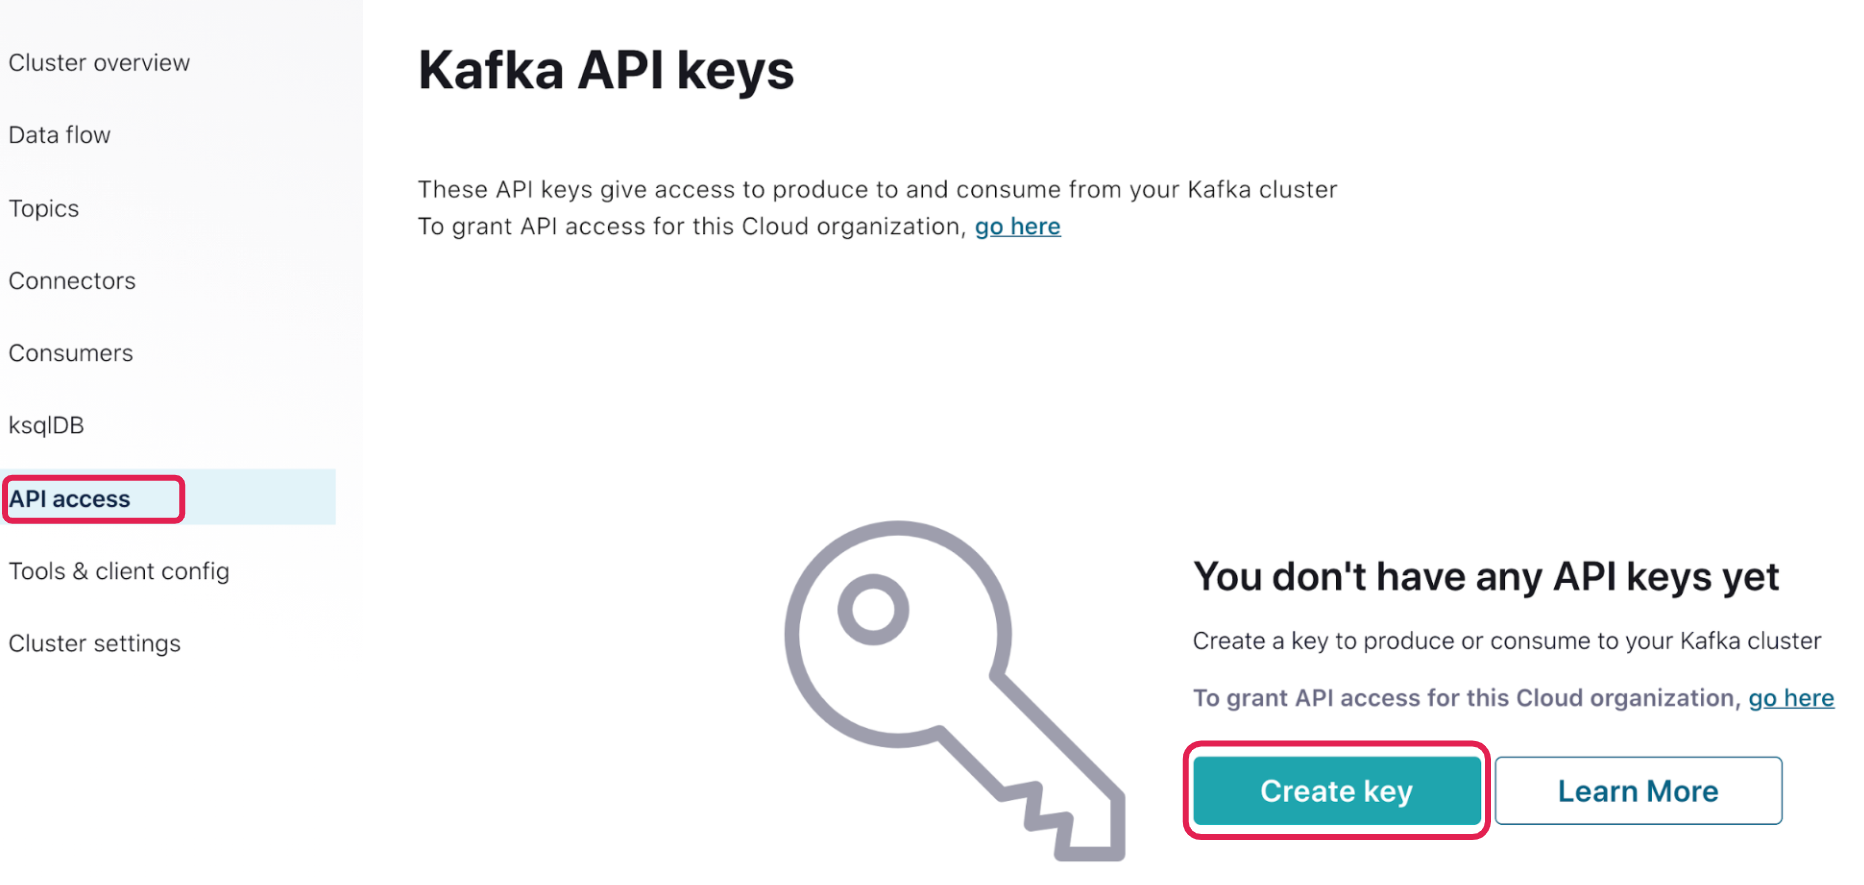 Kafka API keys | API access | Create key